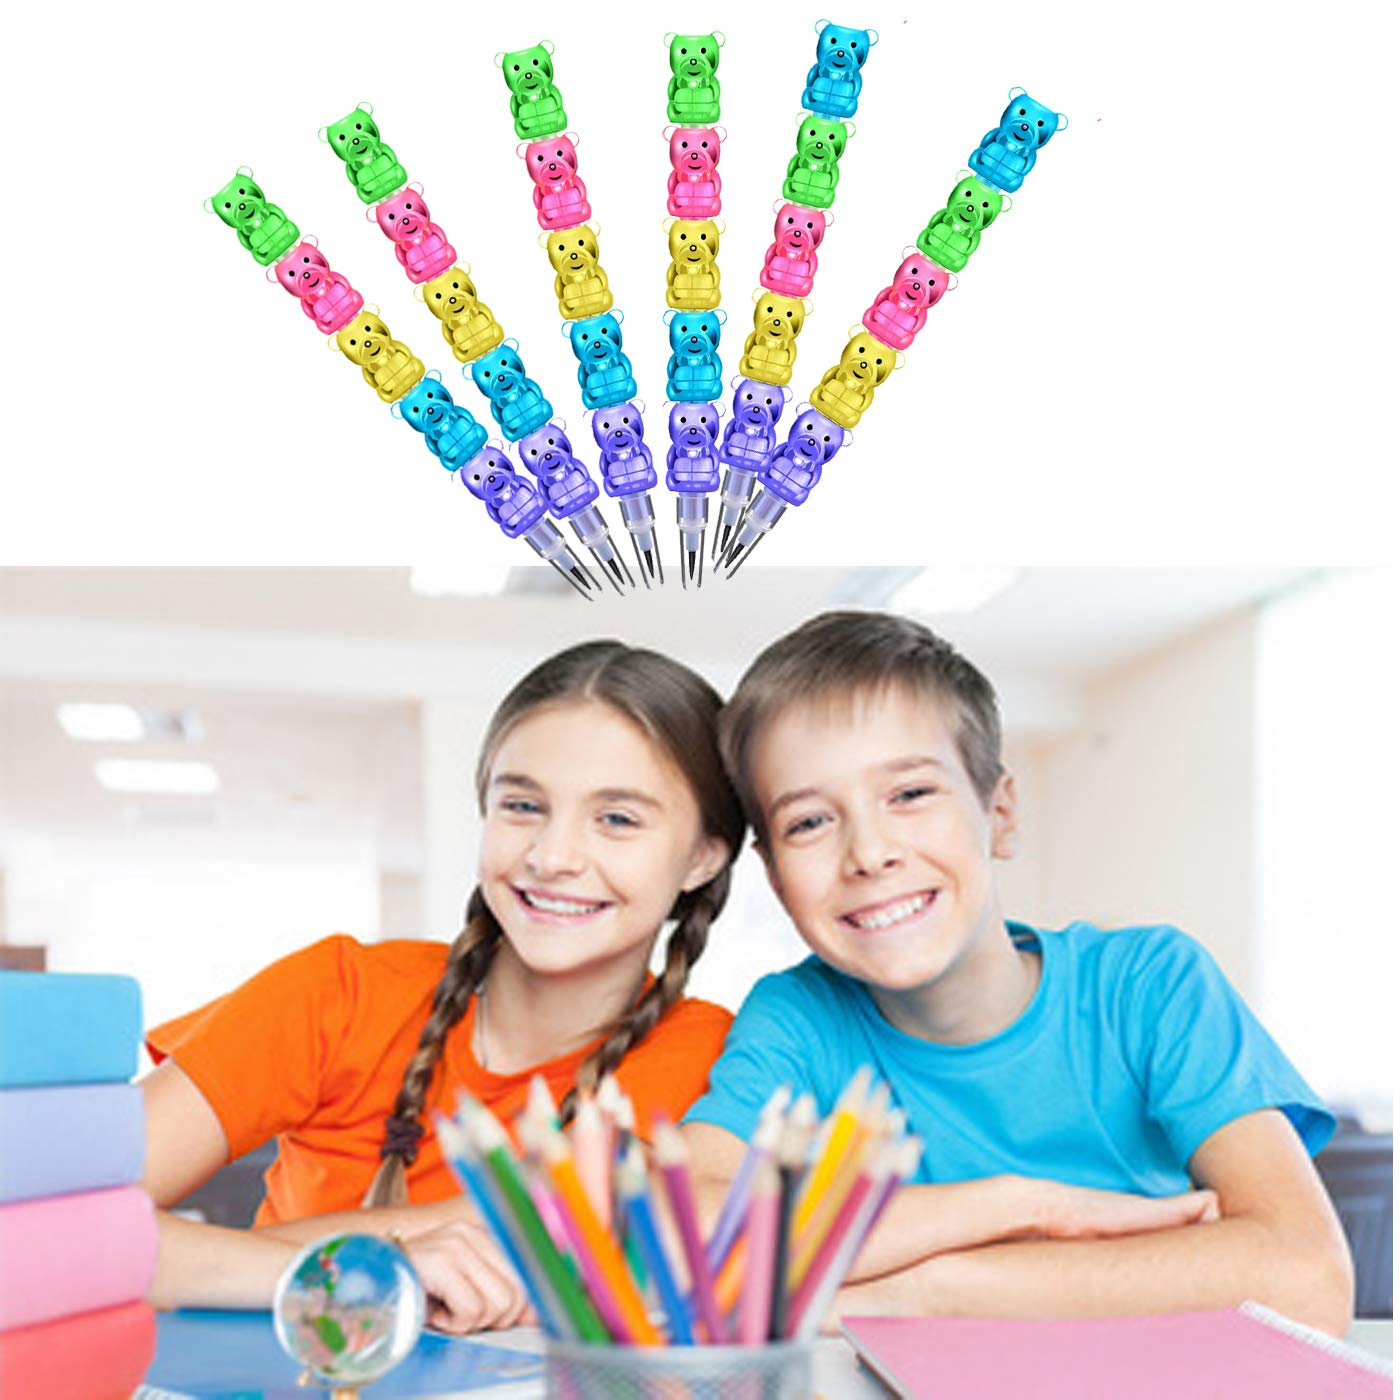 LGDehome 40 Pieces Colorful Stackable Pencils Plastic Bear Pencils 5 in 1 Stacking Pencils with A Waterproof Pencil Case for Birthday Party Favor School Supplies